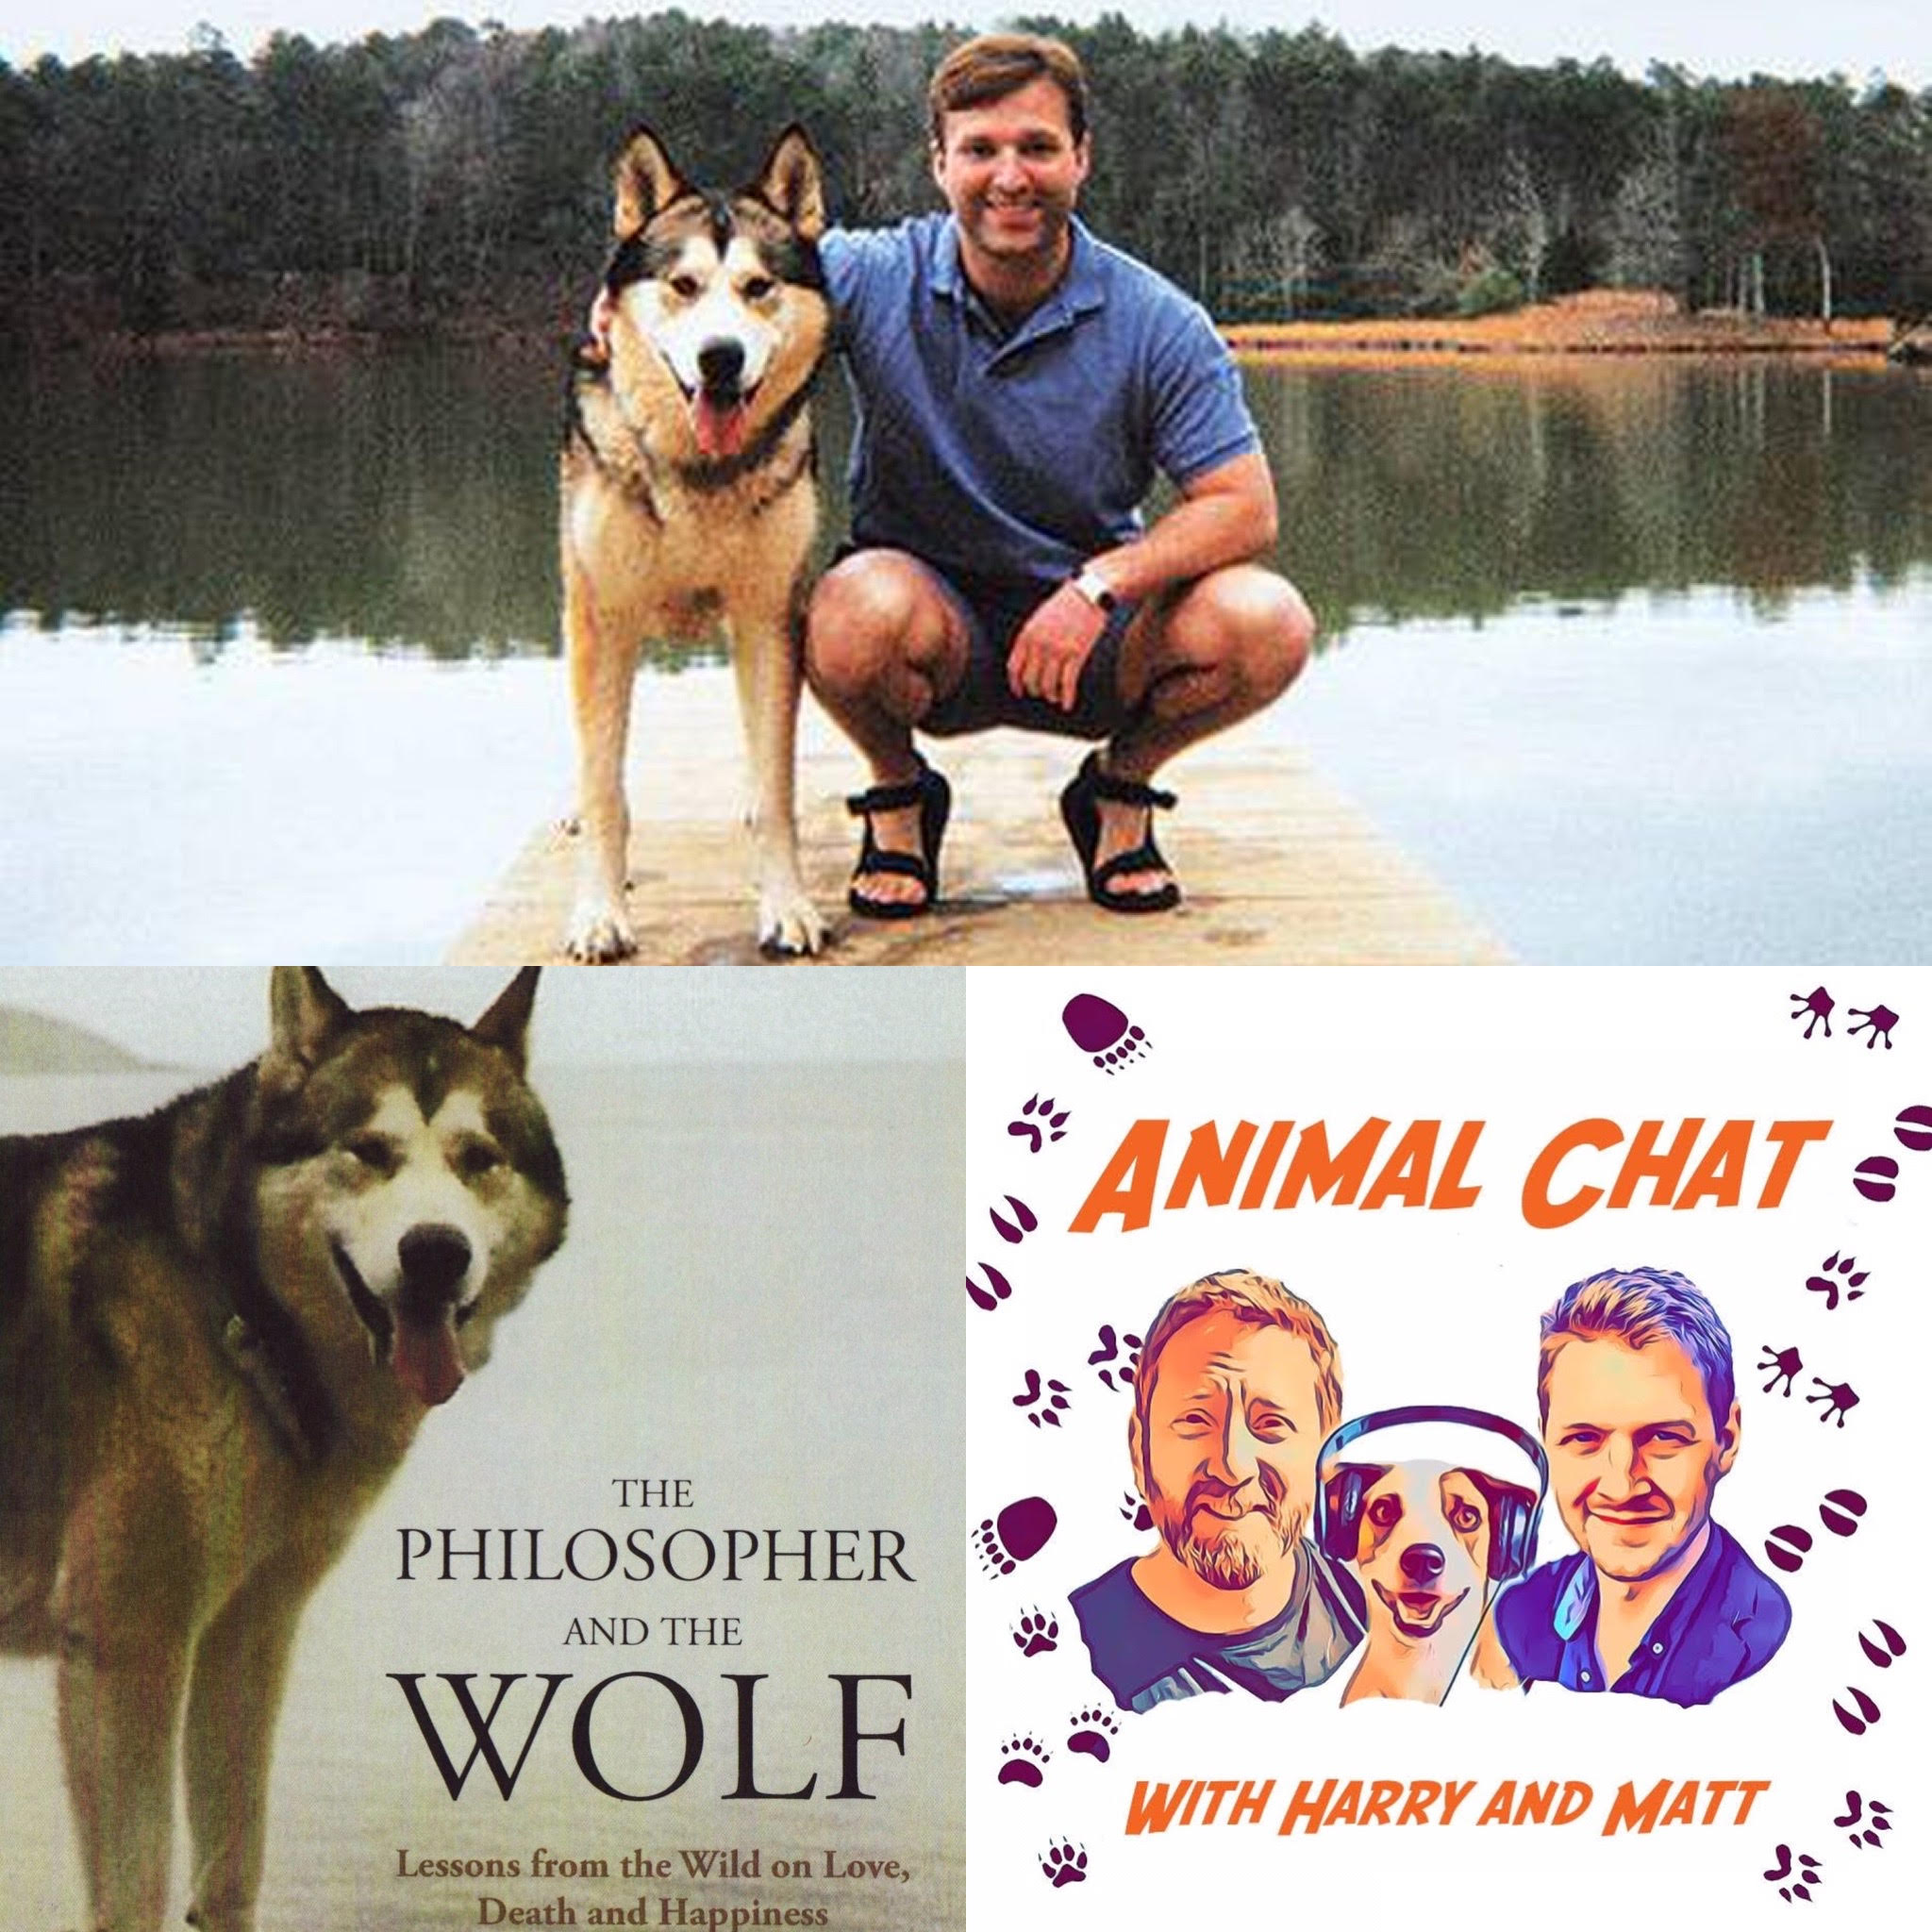 S2 E10 Animal Chat with Mark Rowlands